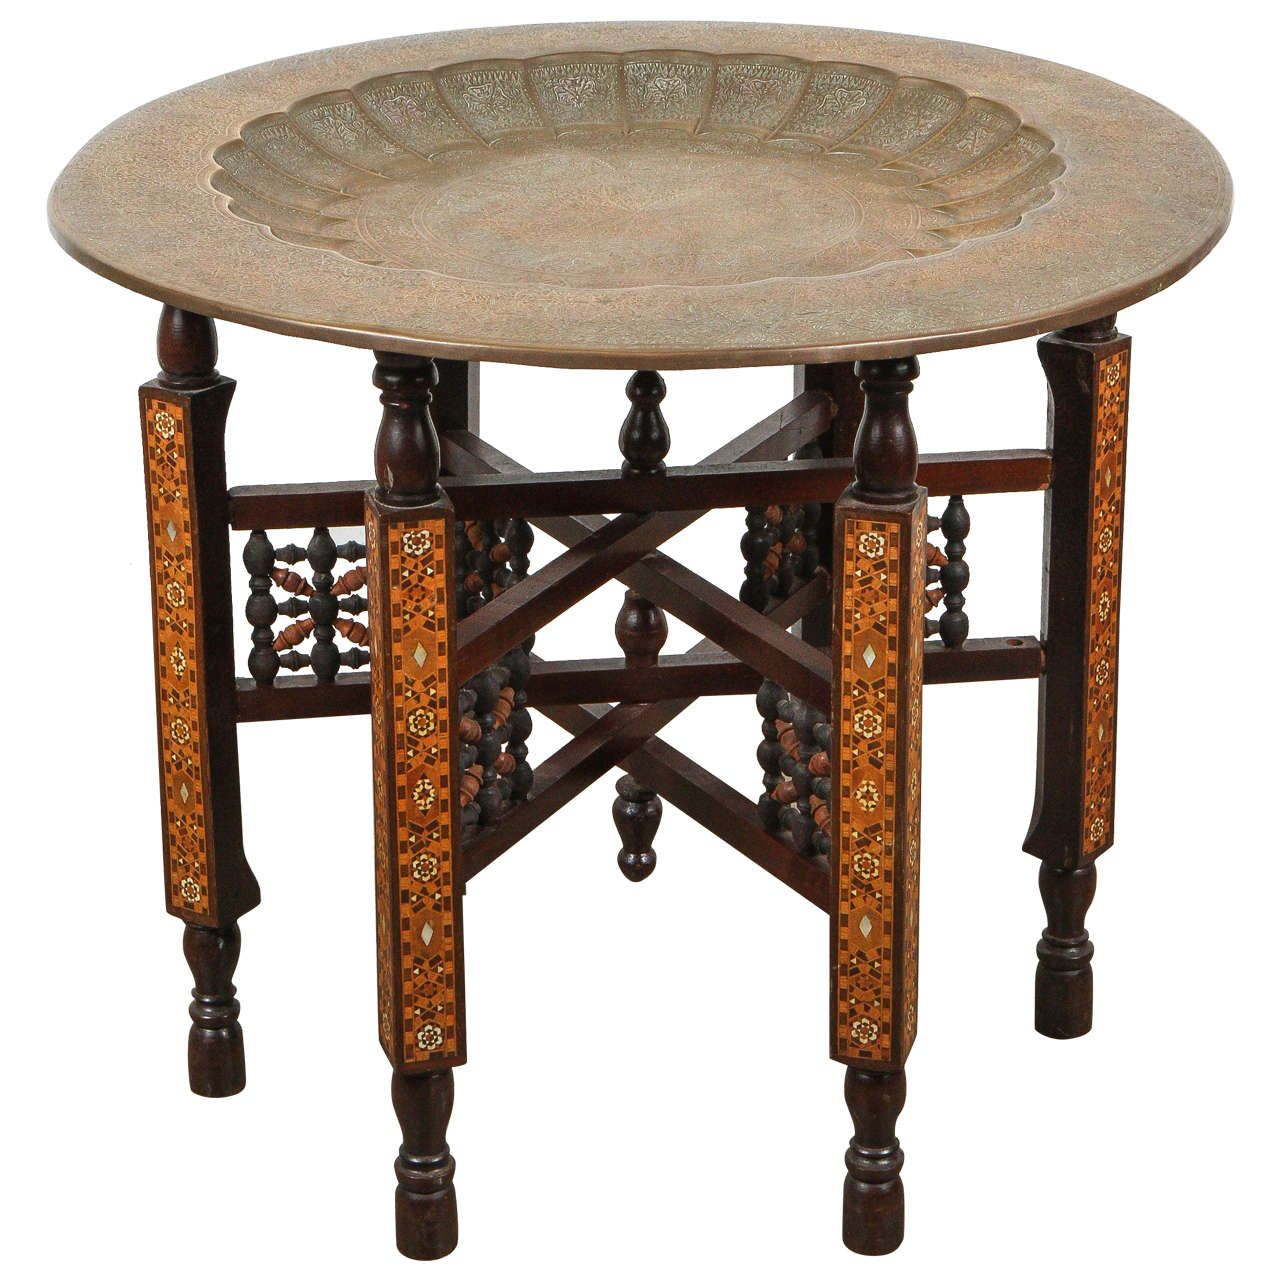 Japanese End Table Wood Accent Stand Modern Lamp Furniture: Moorish Brass Tray Table On Inlaid Folding Stand